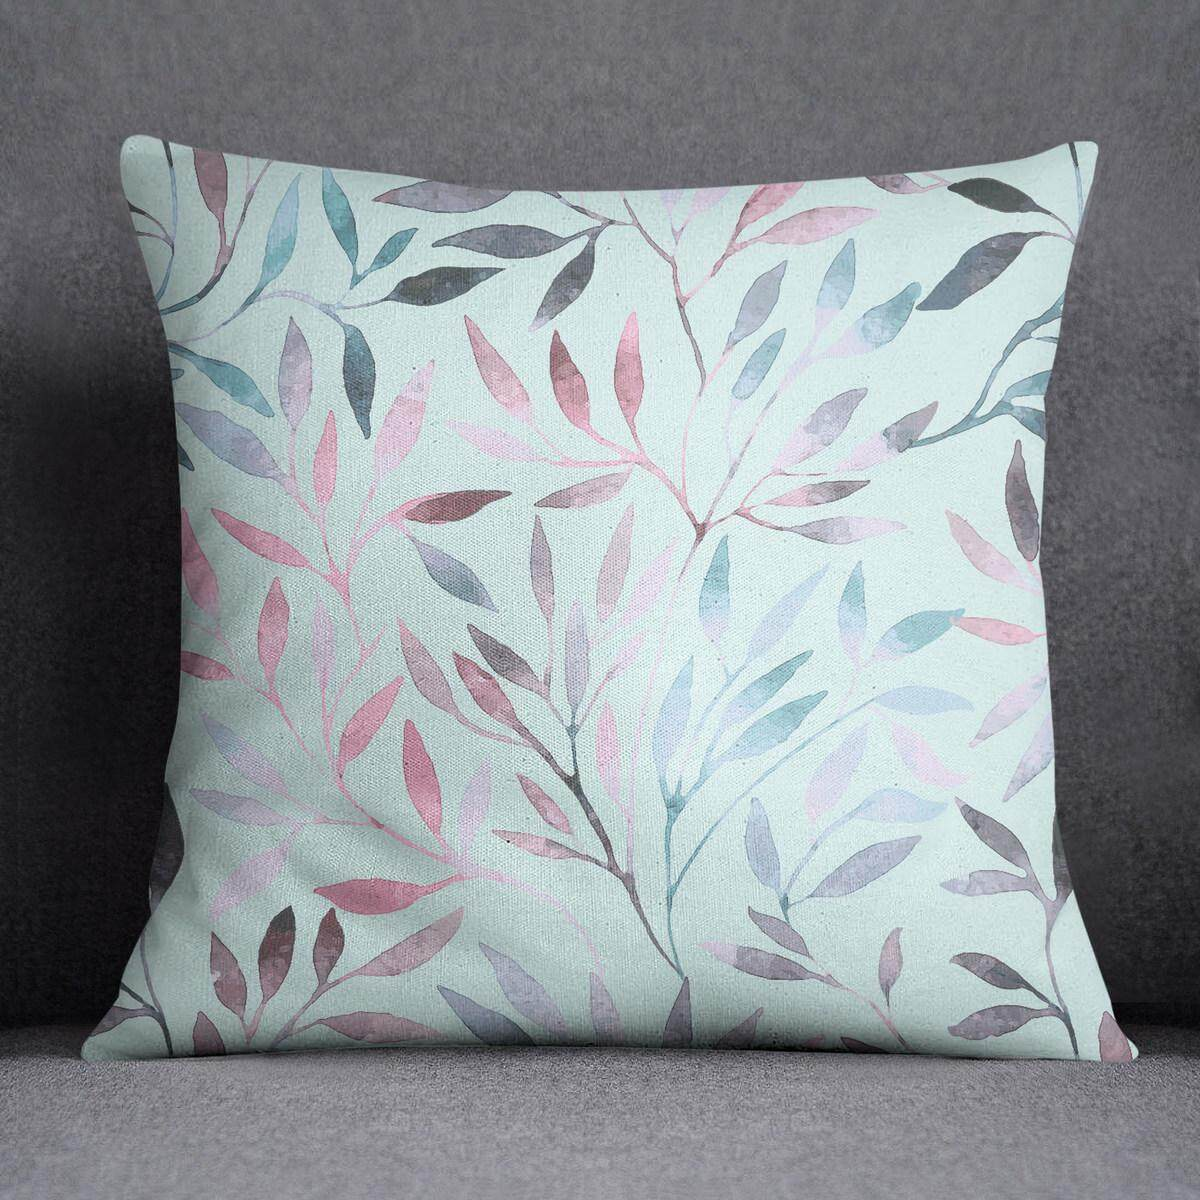 S4Sassy Pillow Cover Leaves Printed Throw Satin Cushion Cover 22x22 Inches, Light Blue - intl